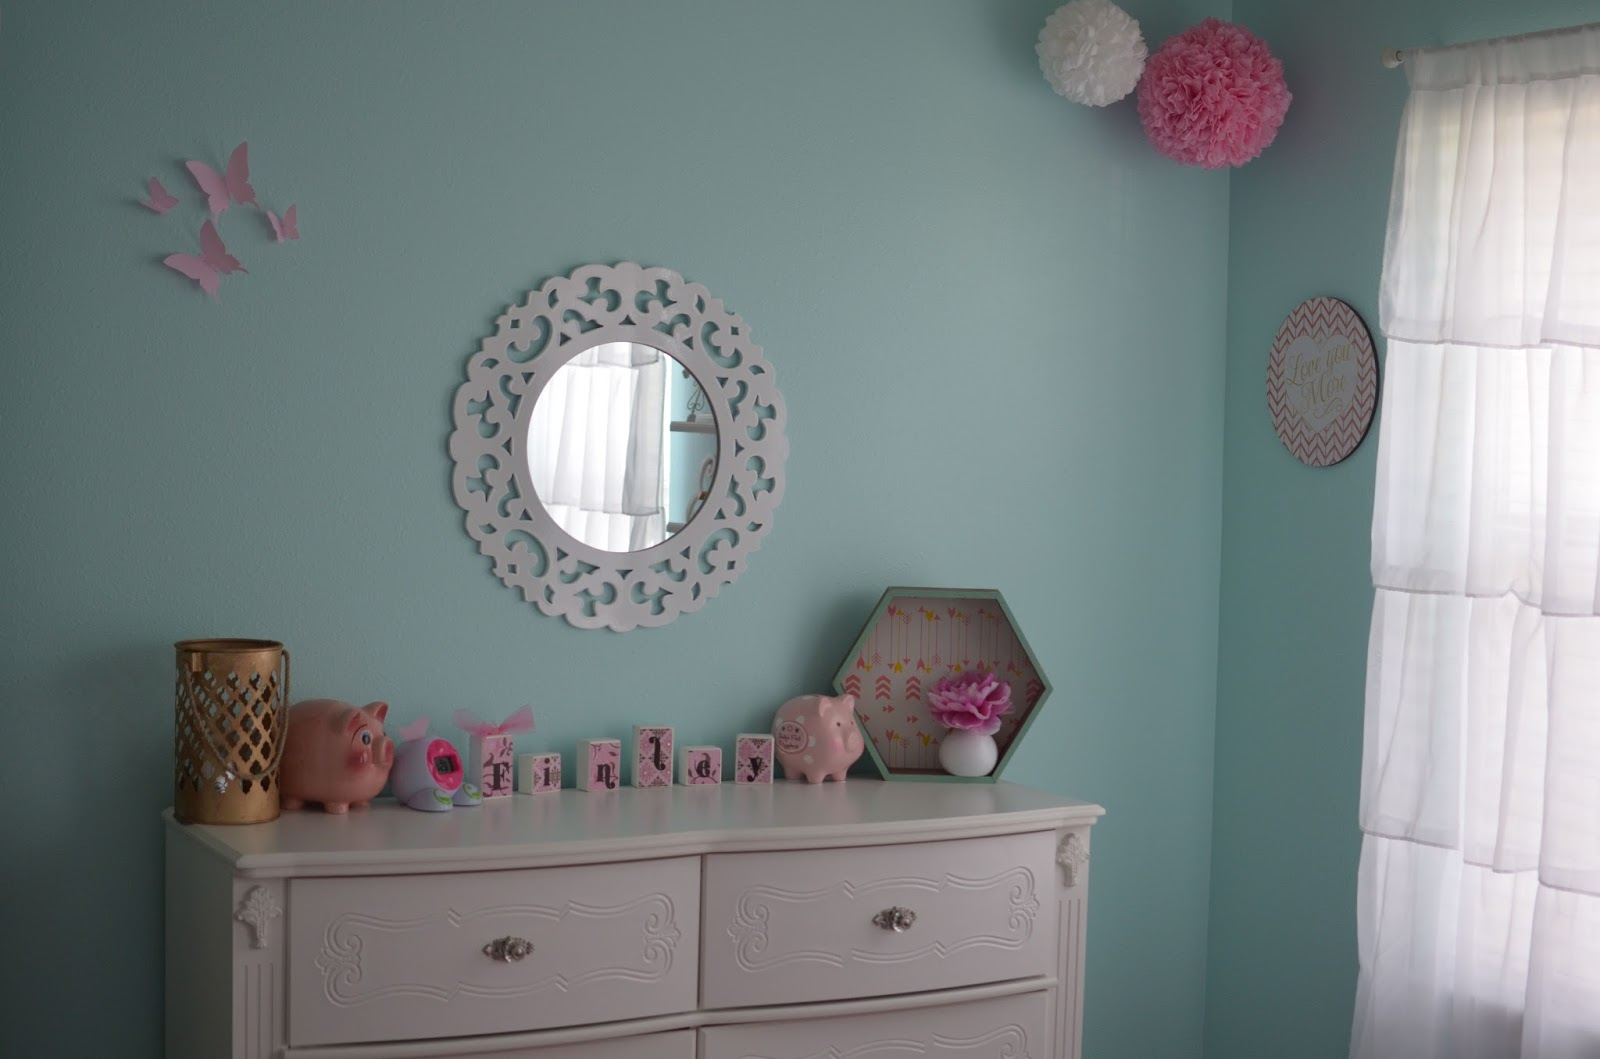 Teal And Pink Bedroom Decor Our Little Loves Finleys Completed Bedroom